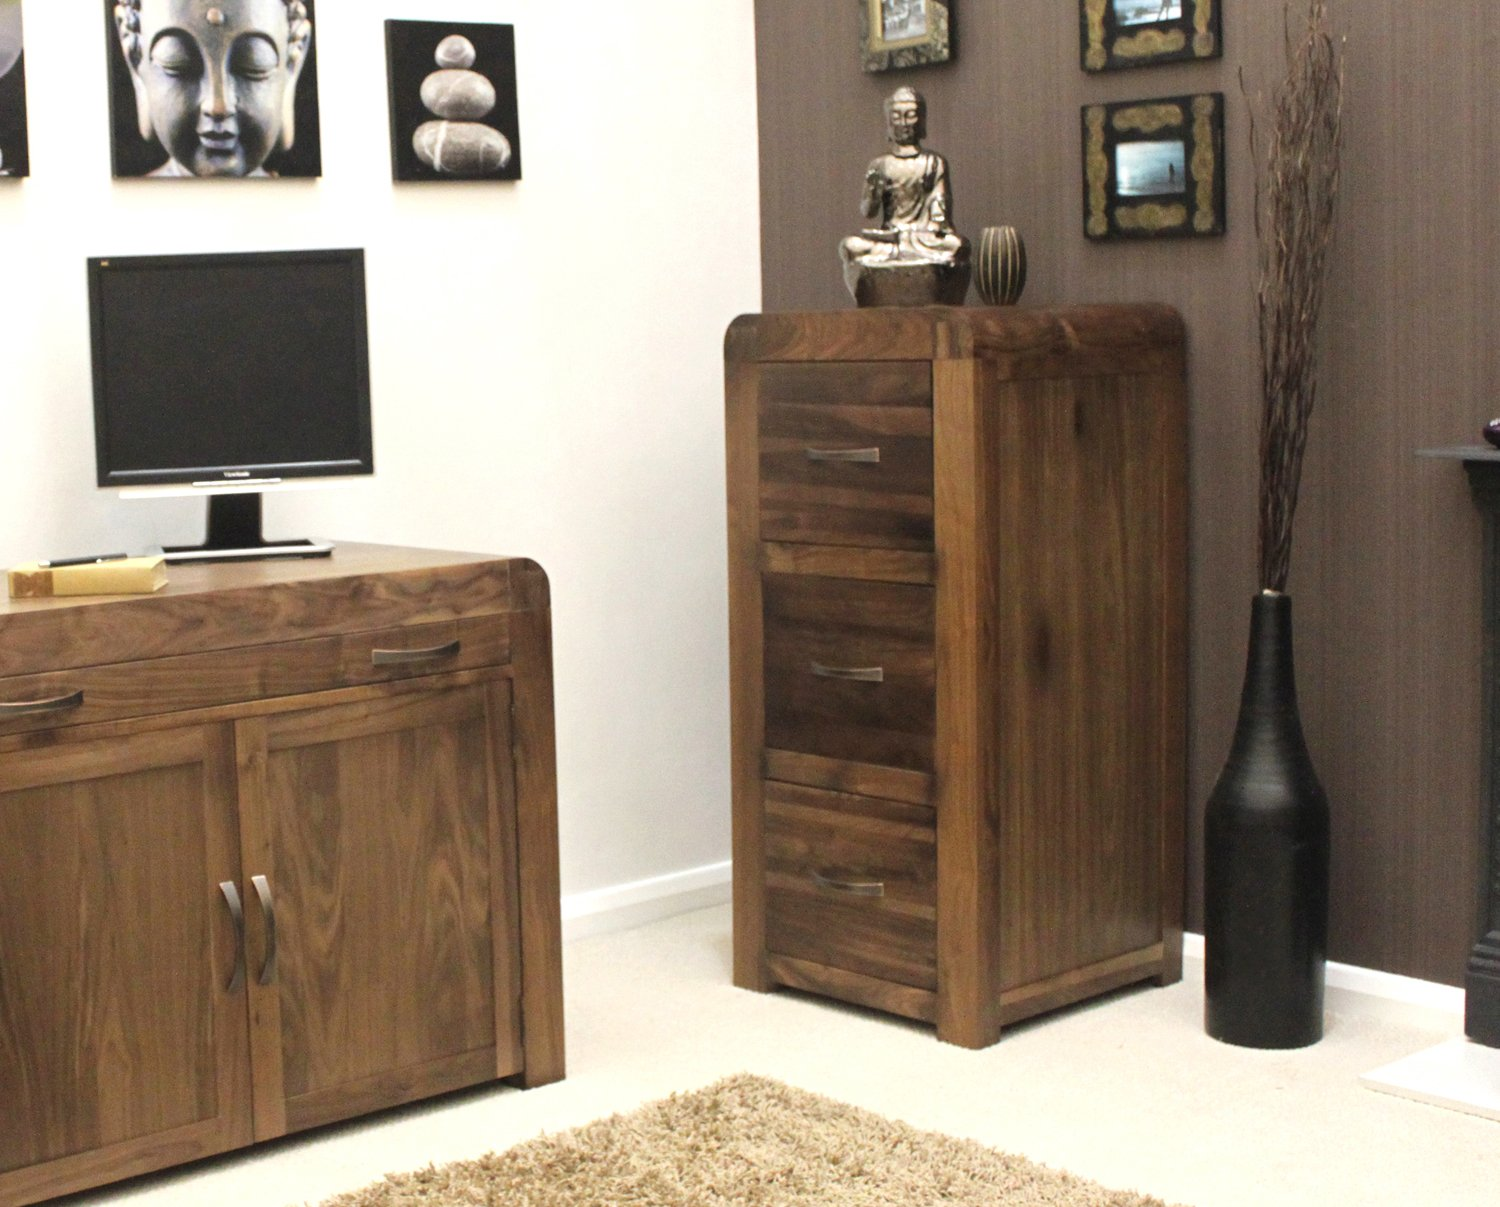 strathmore solid walnut furniture shoe cupboard cabinet. baumhaus shiro walnut 3 drawer filing cabinet amazoncouk kitchen u0026 home strathmore solid furniture shoe cupboard